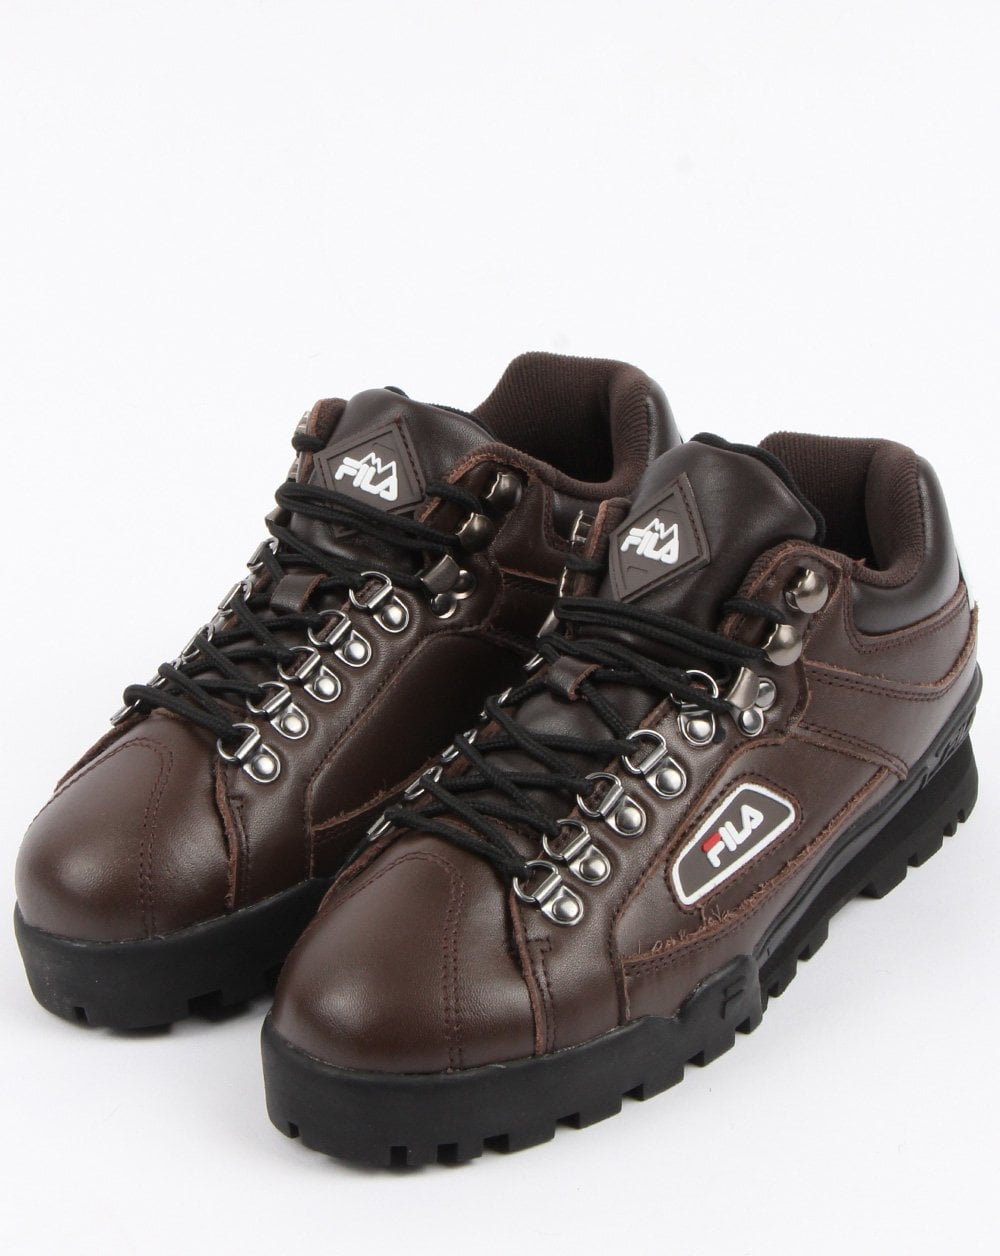 Fila Trailblazer Boots Brown